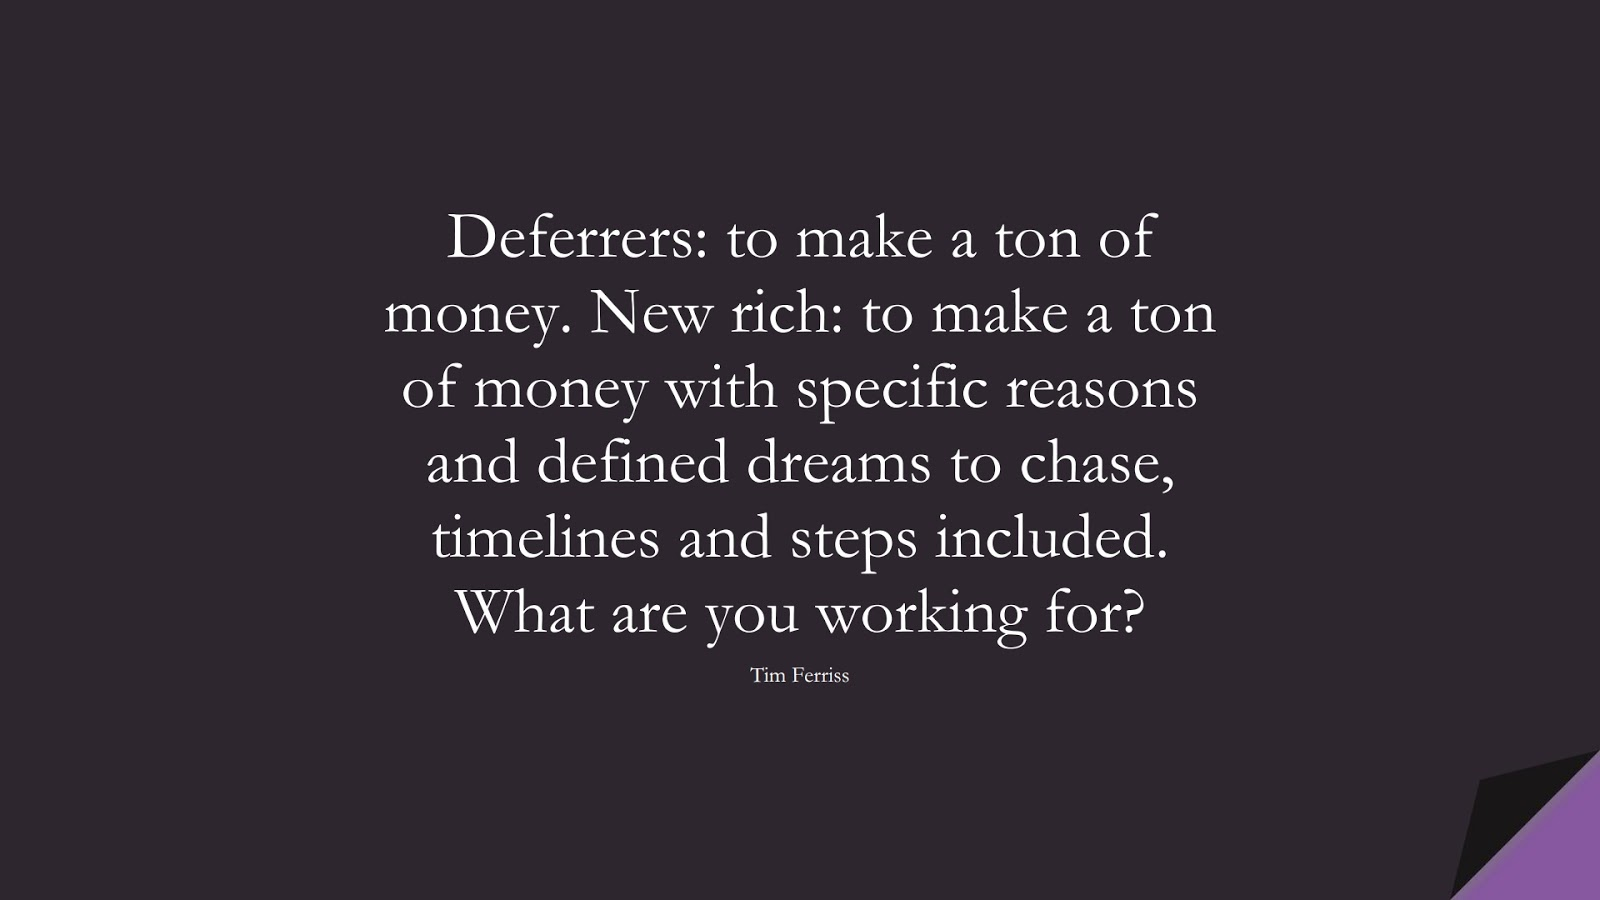 Deferrers: to make a ton of money. New rich: to make a ton of money with specific reasons and defined dreams to chase, timelines and steps included. What are you working for? (Tim Ferriss);  #TimFerrissQuotes